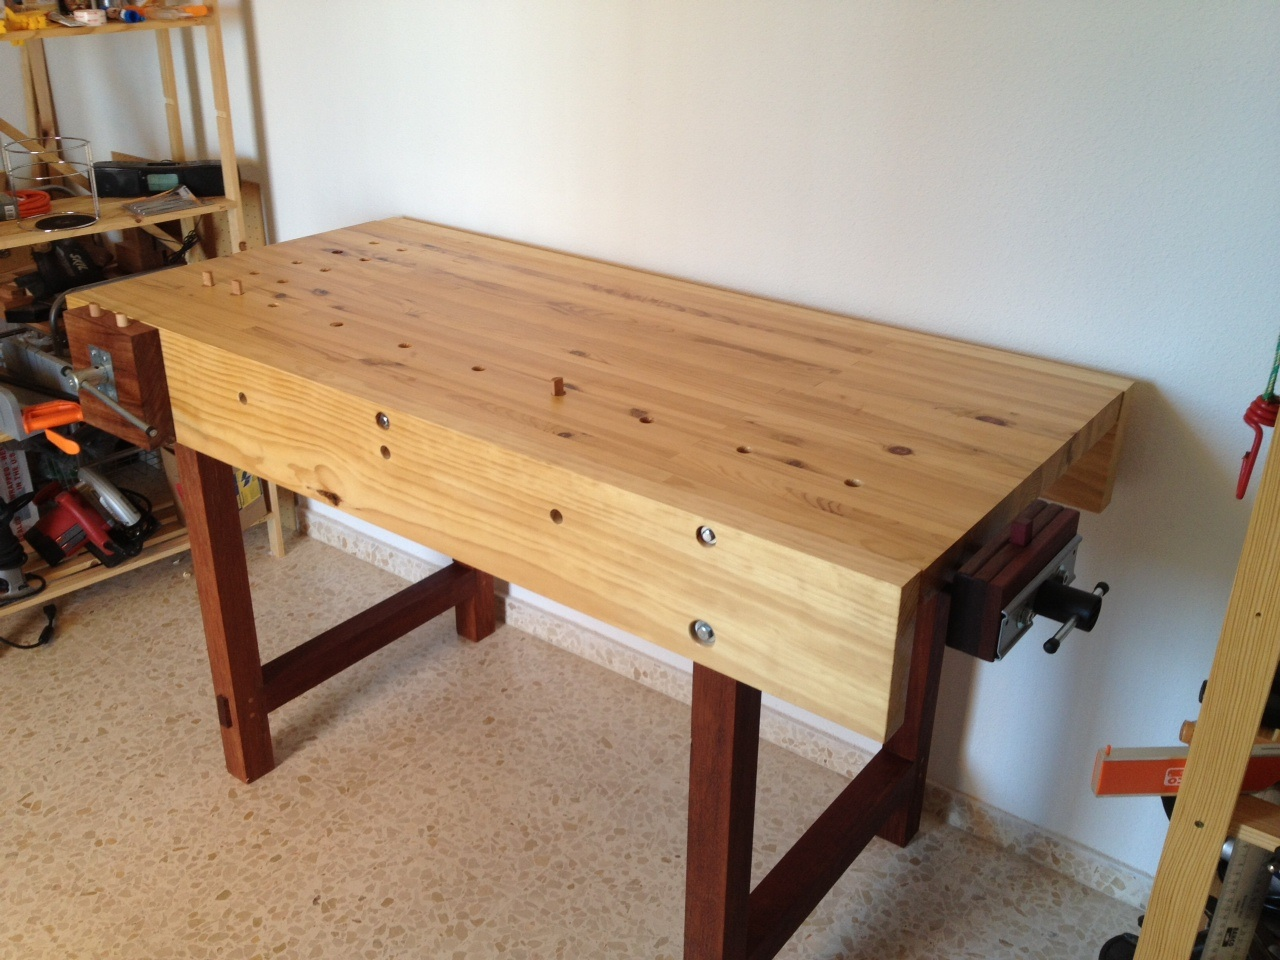 daniel's woodworking bench - the wood whisperer